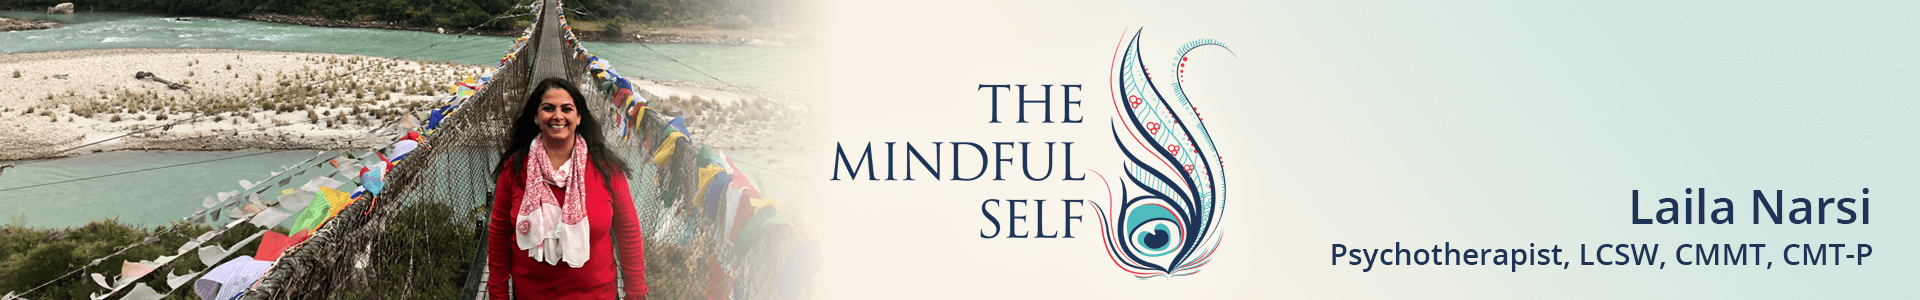 The Mindful Self